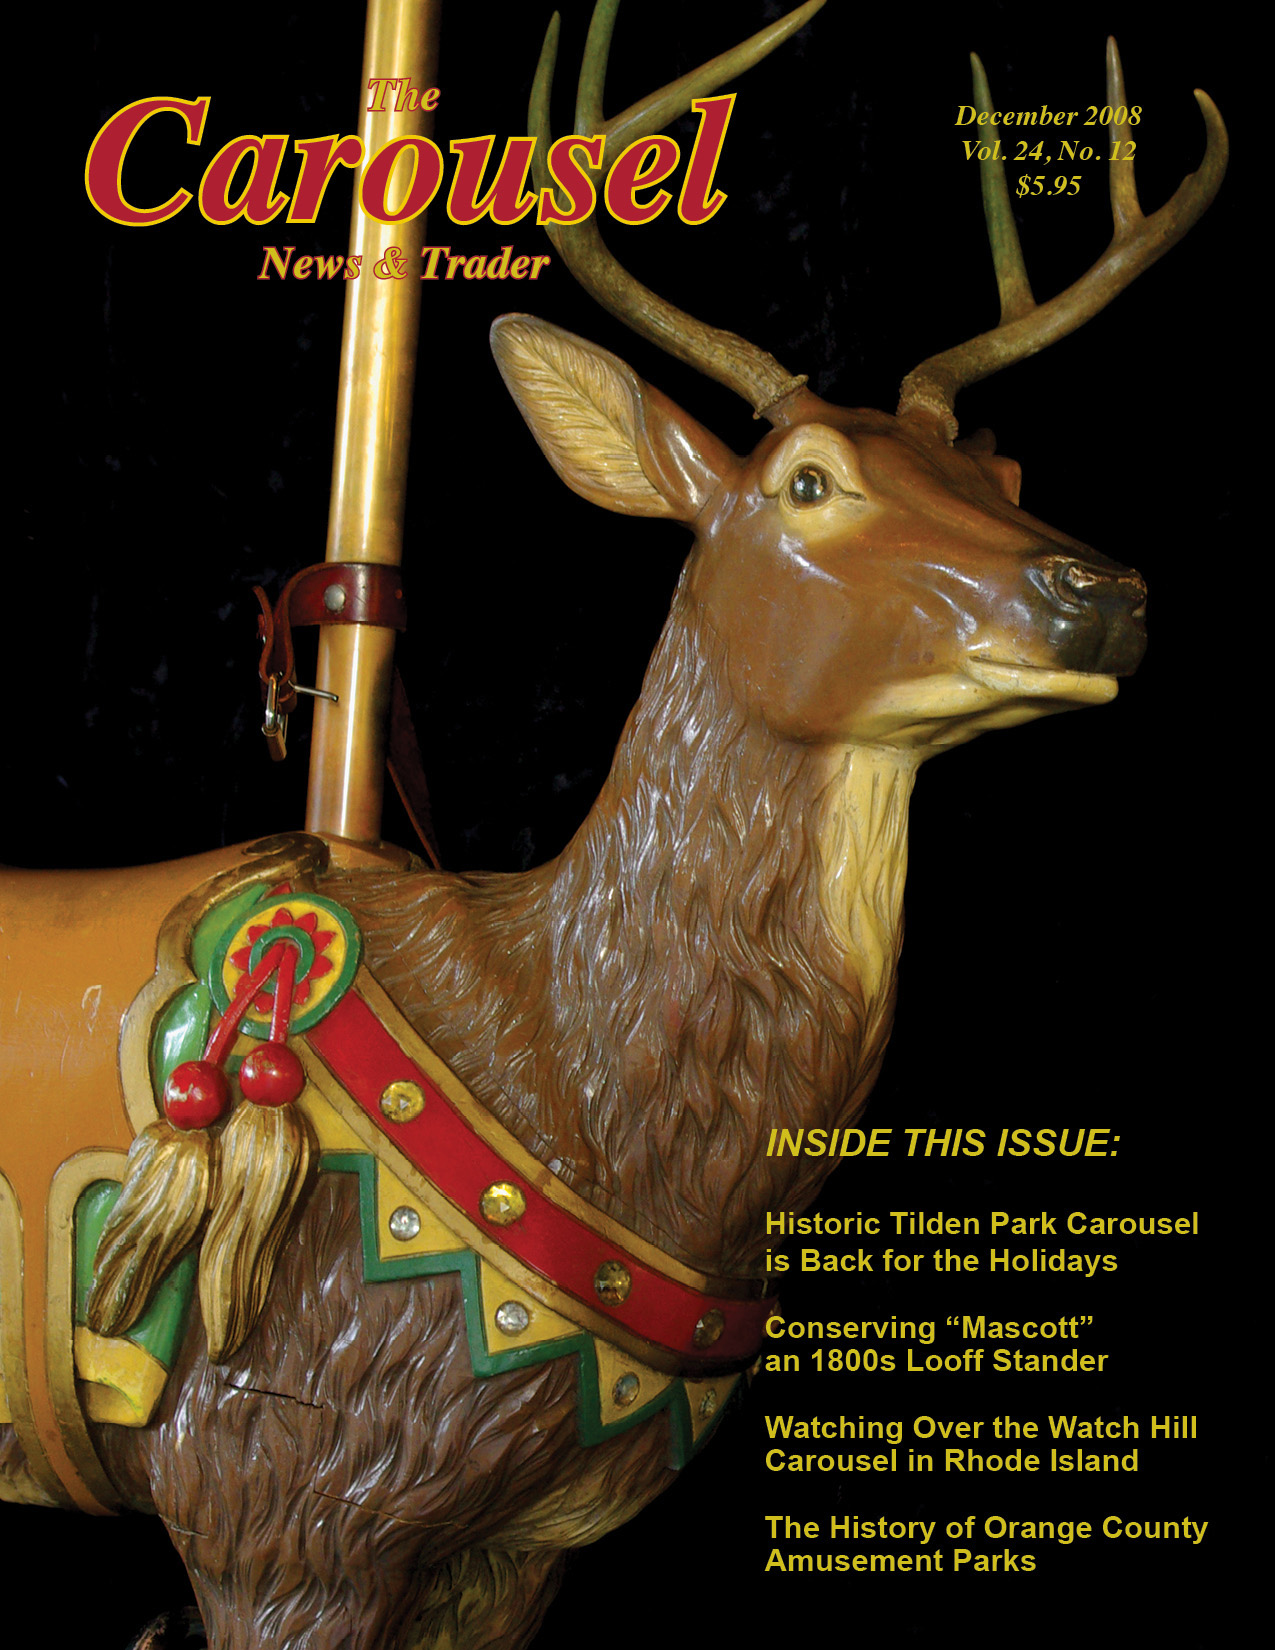 Carousel-news-cover-12-Tilden-Park-carousel-December-2008